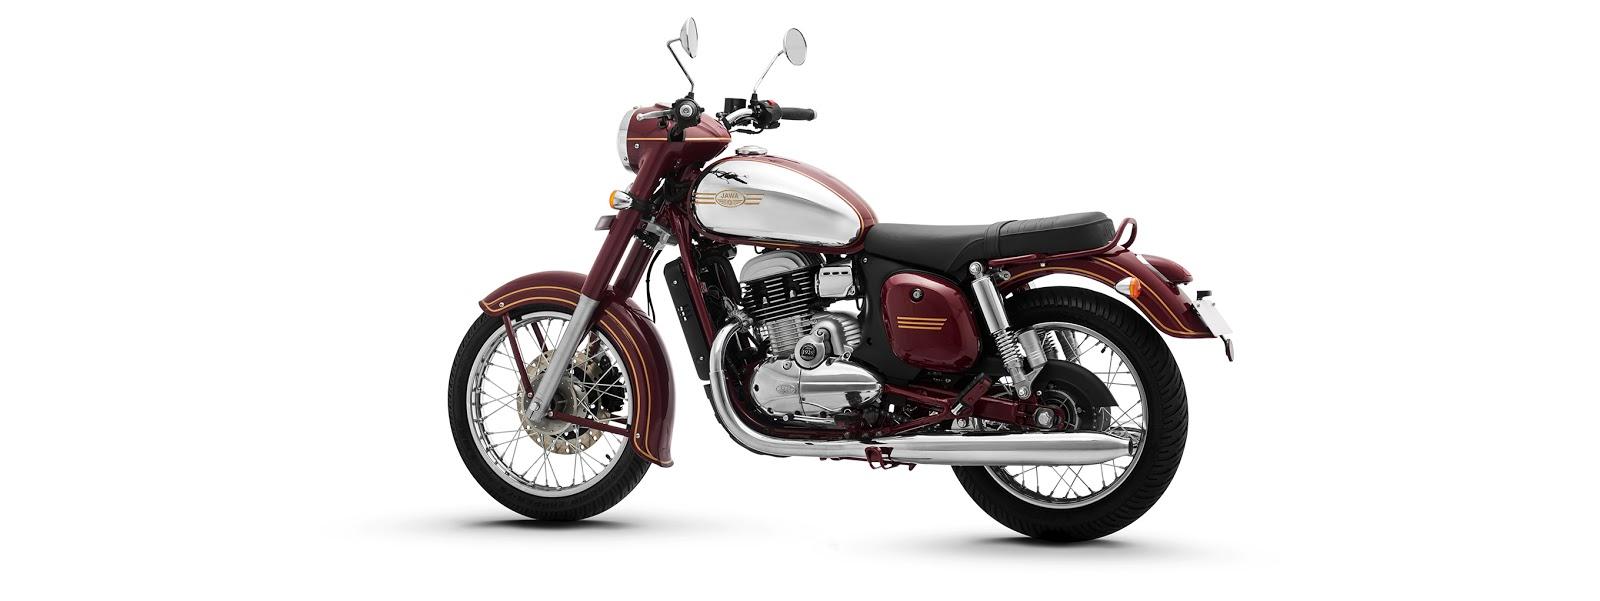 Jawa motorcycle is available in three colors,Jawa Maroon